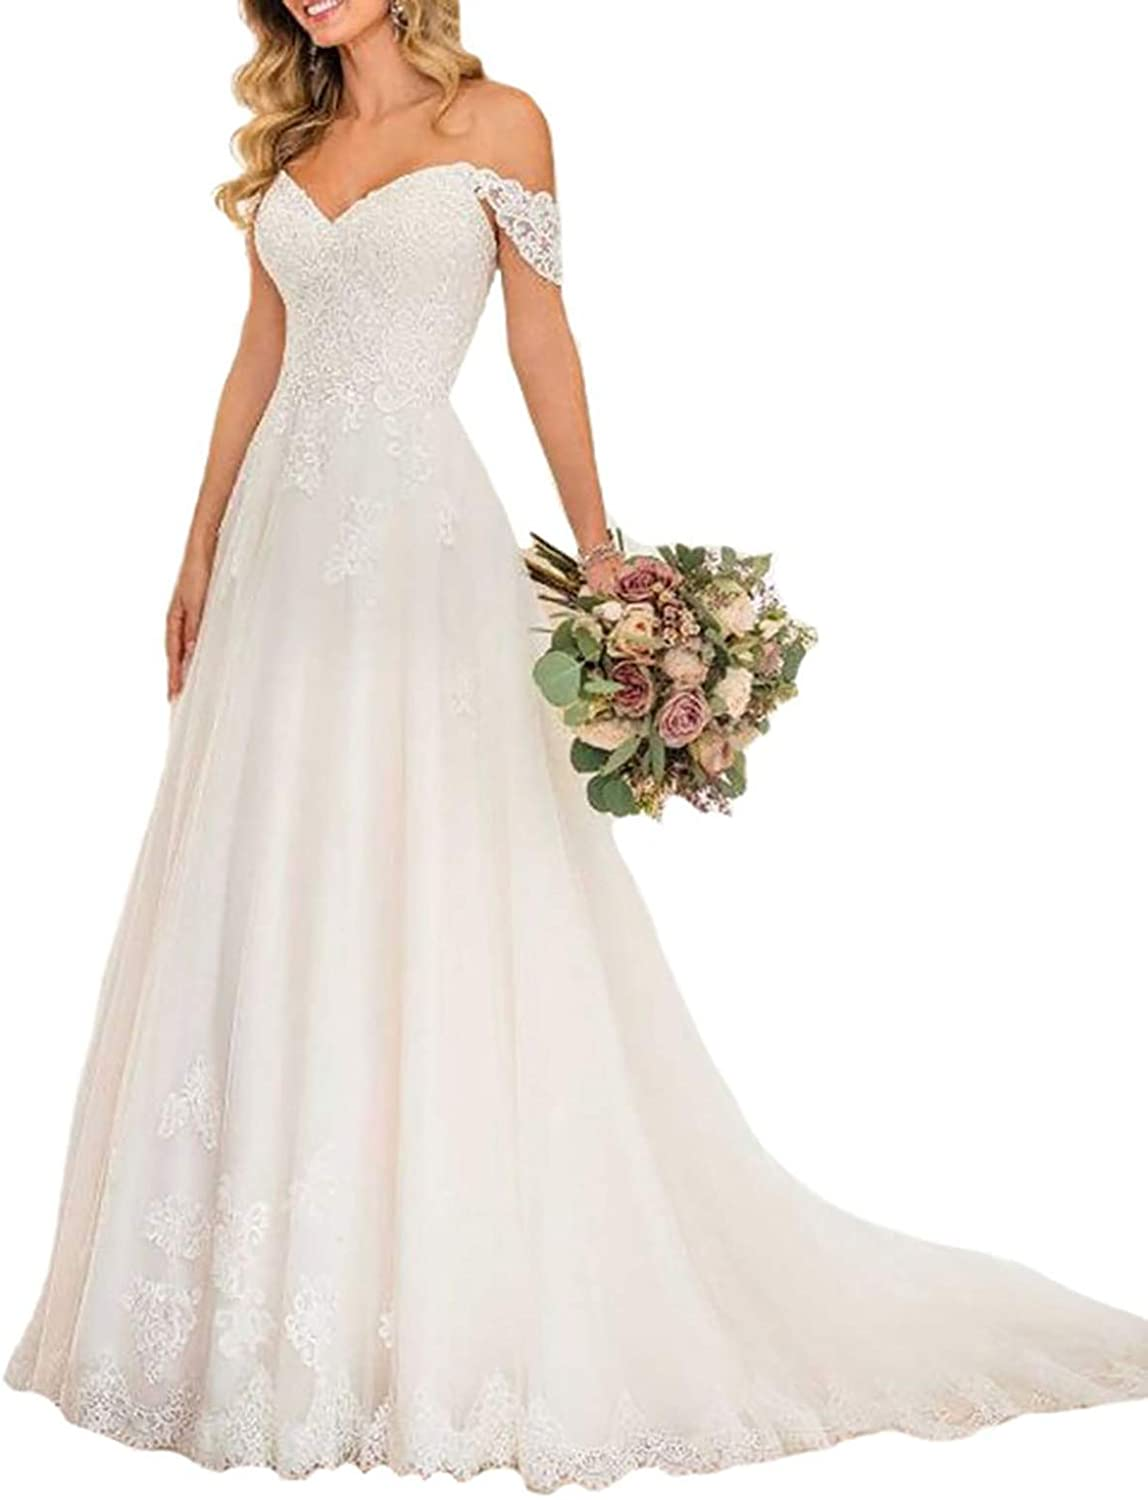 YnanLi Dress Women's Long Off The Shoulder Lace Tulle Wedding Dresses A Line Strapless Bridal Prom Gown White Size 8